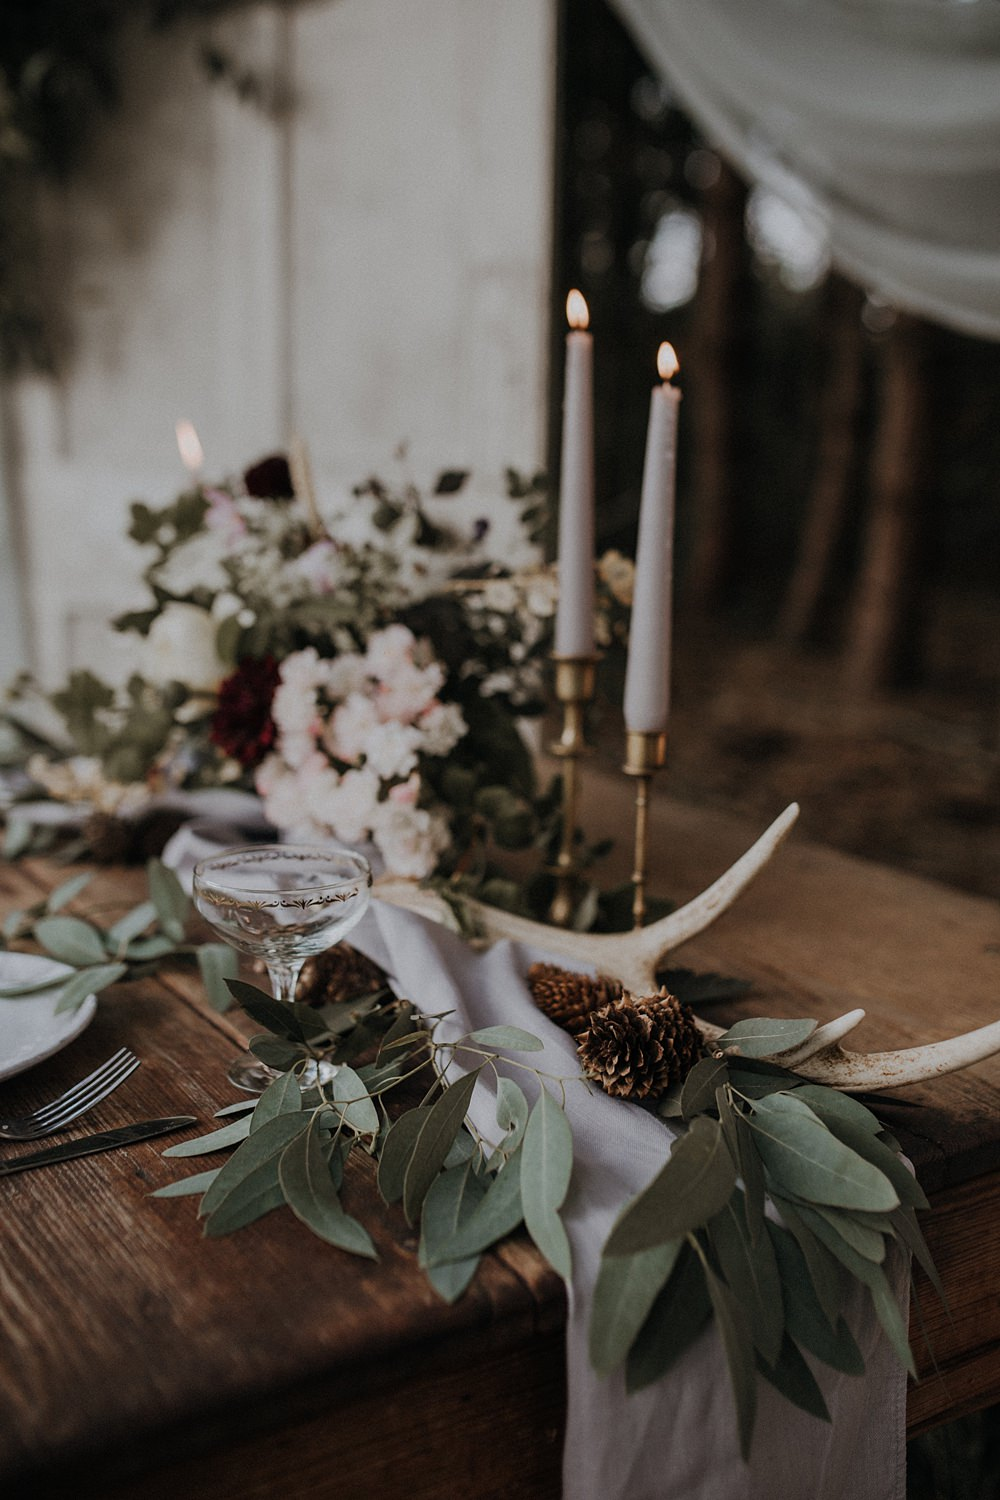 Table Flowers Tablescape Wild Natural Arrangement Antlers Greenery Foliage Runner Bohemian Woodland Wedding Ideas Lola Rose Photography